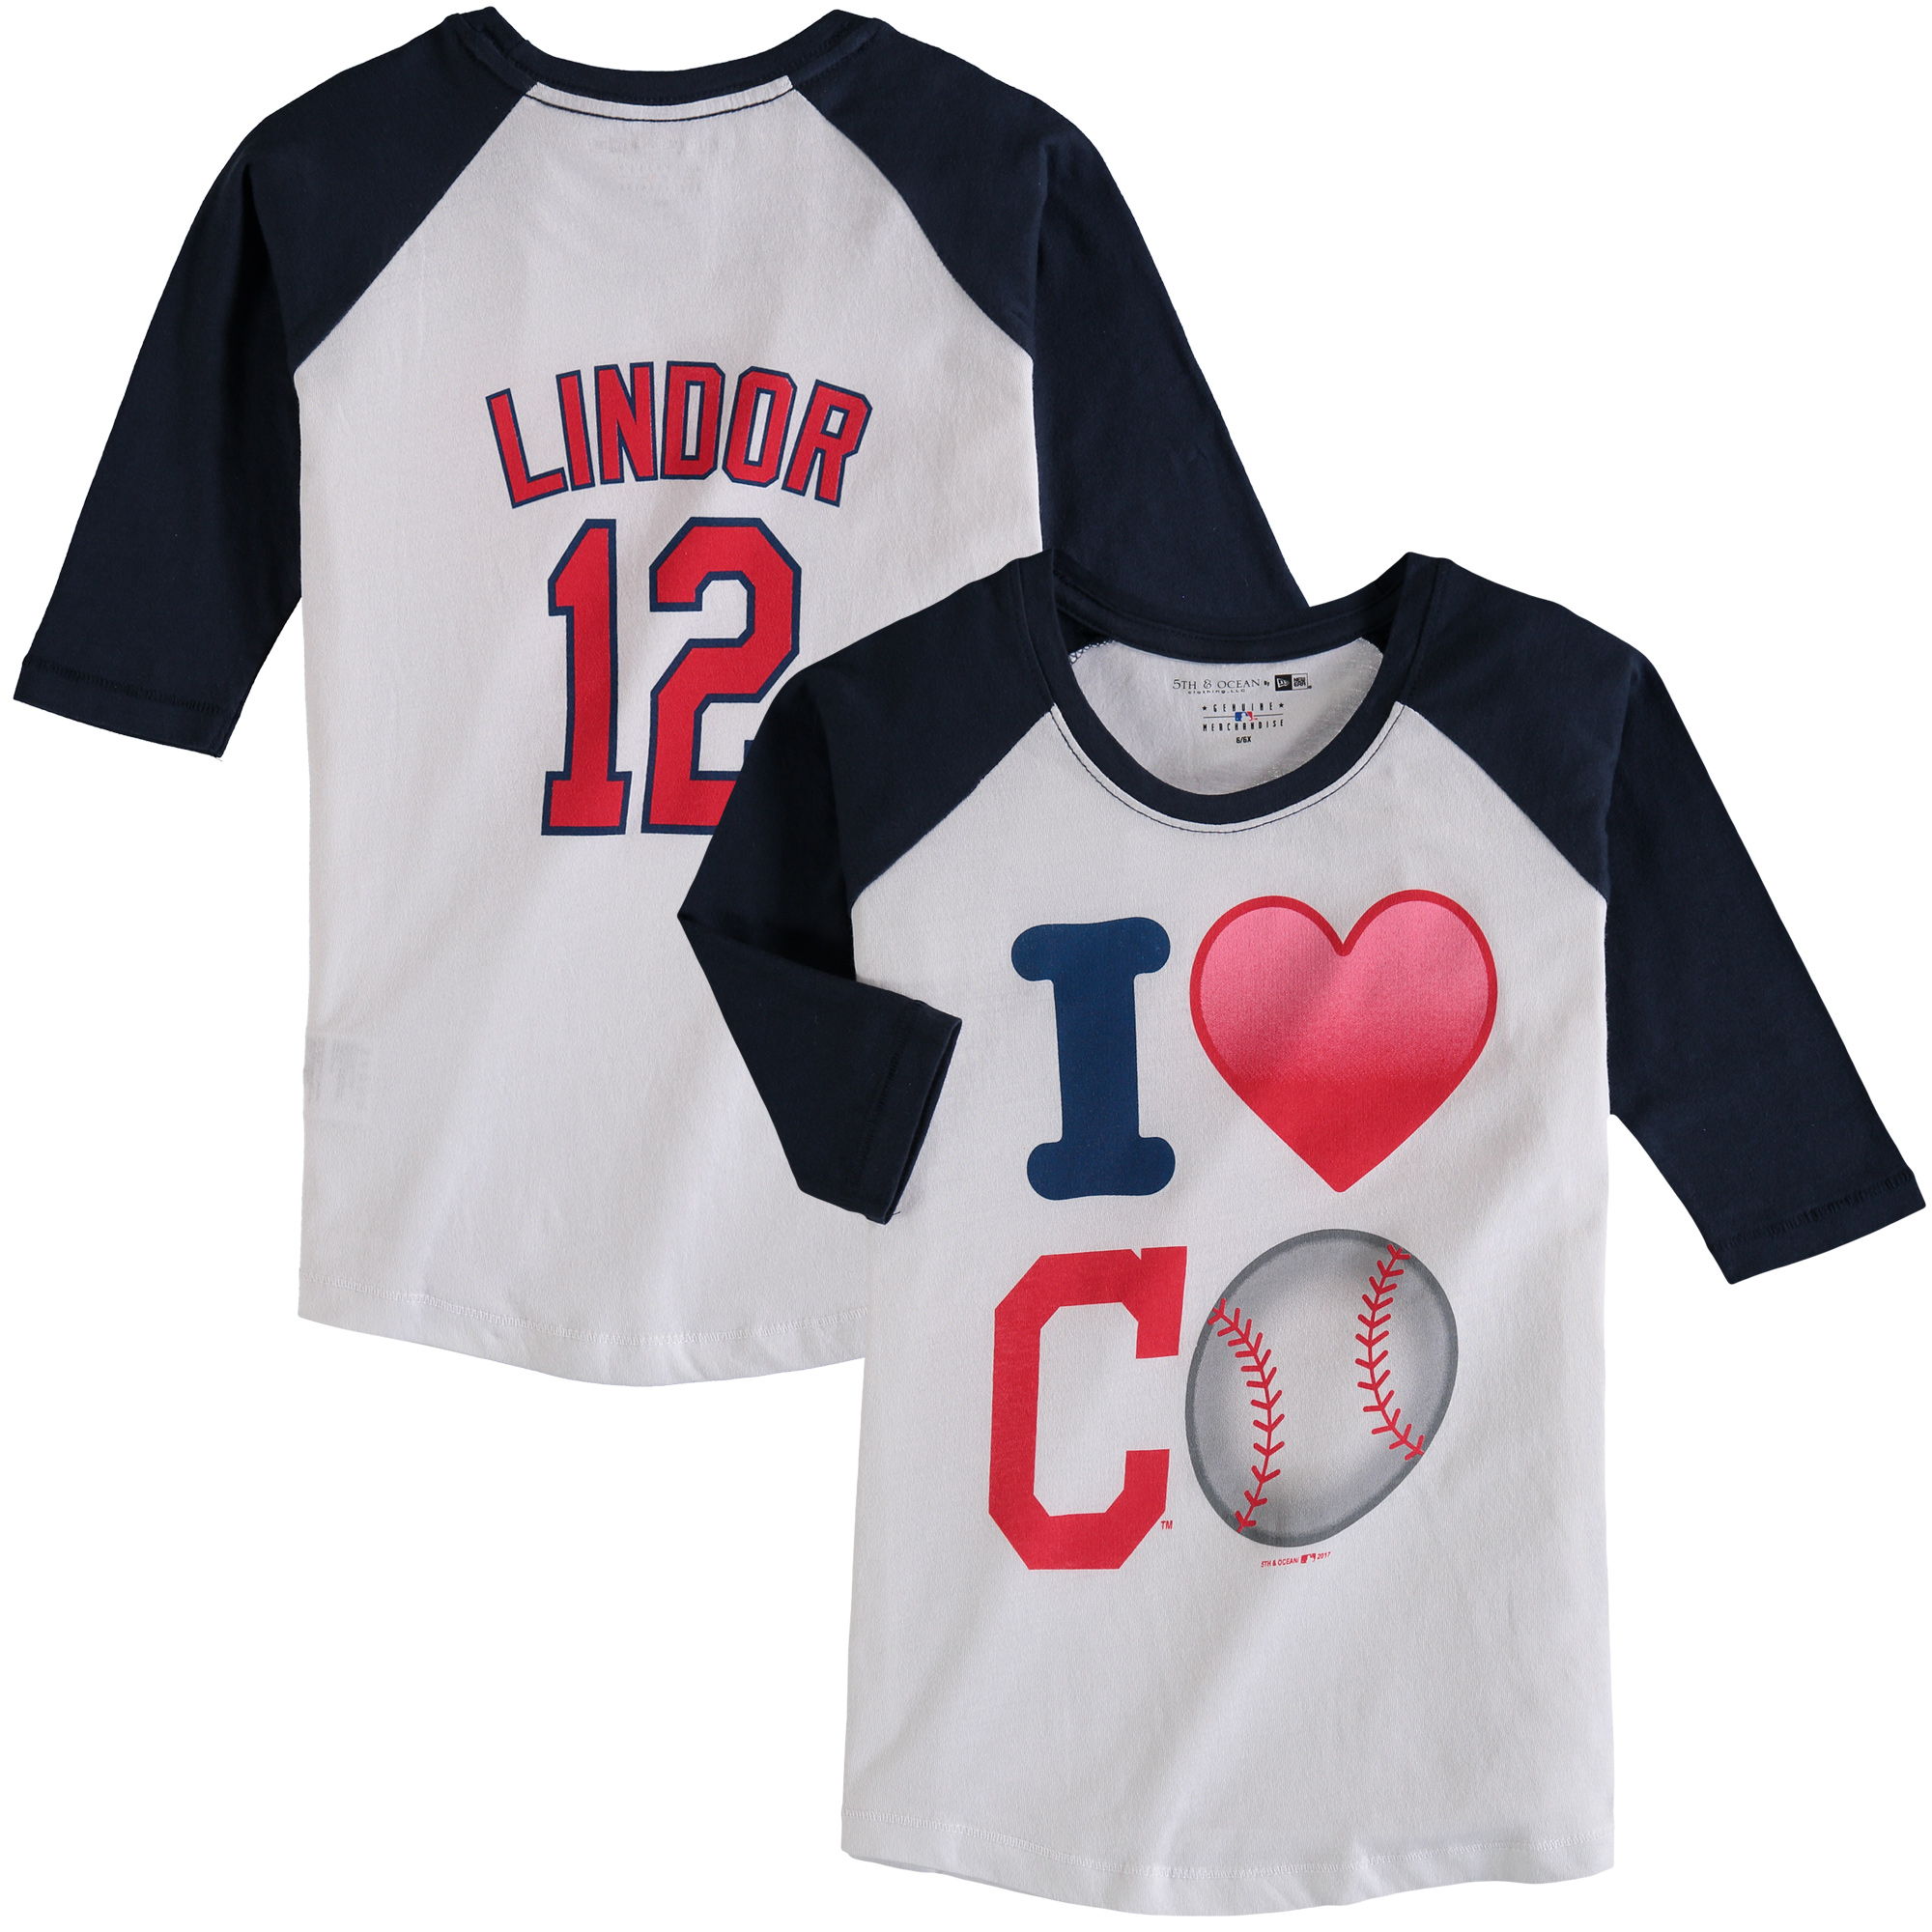 Francisco Lindor Cleveland Indians 5th & Ocean by New Era Girls Youth Emoji Love Player Name & Number 3/4-Sleeve Raglan T-Shirt - White/Navy